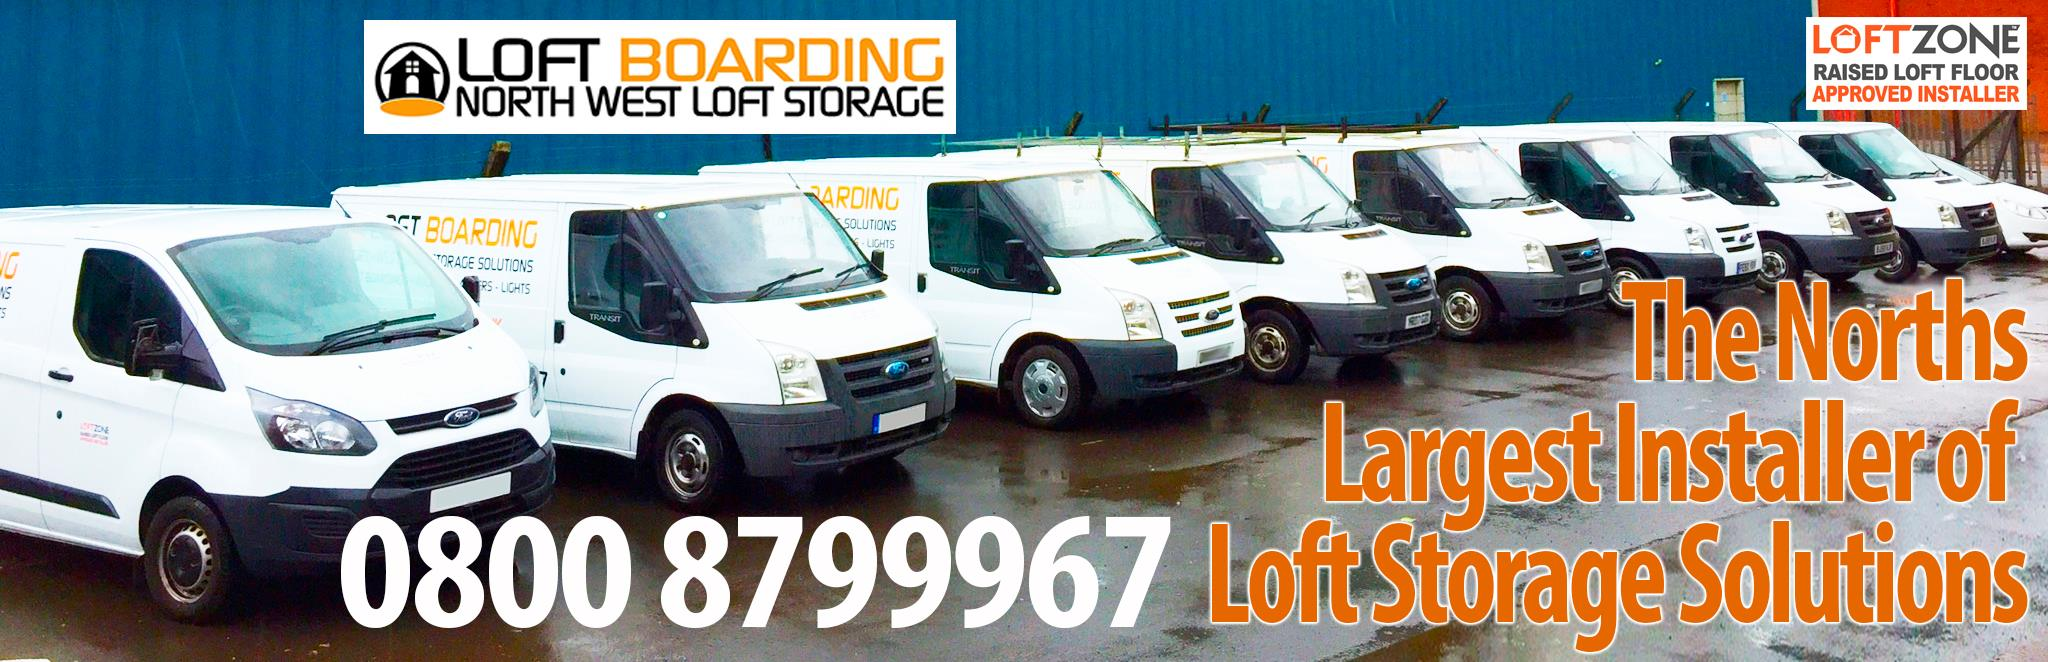 The Norths Largest Loft Boarding Company